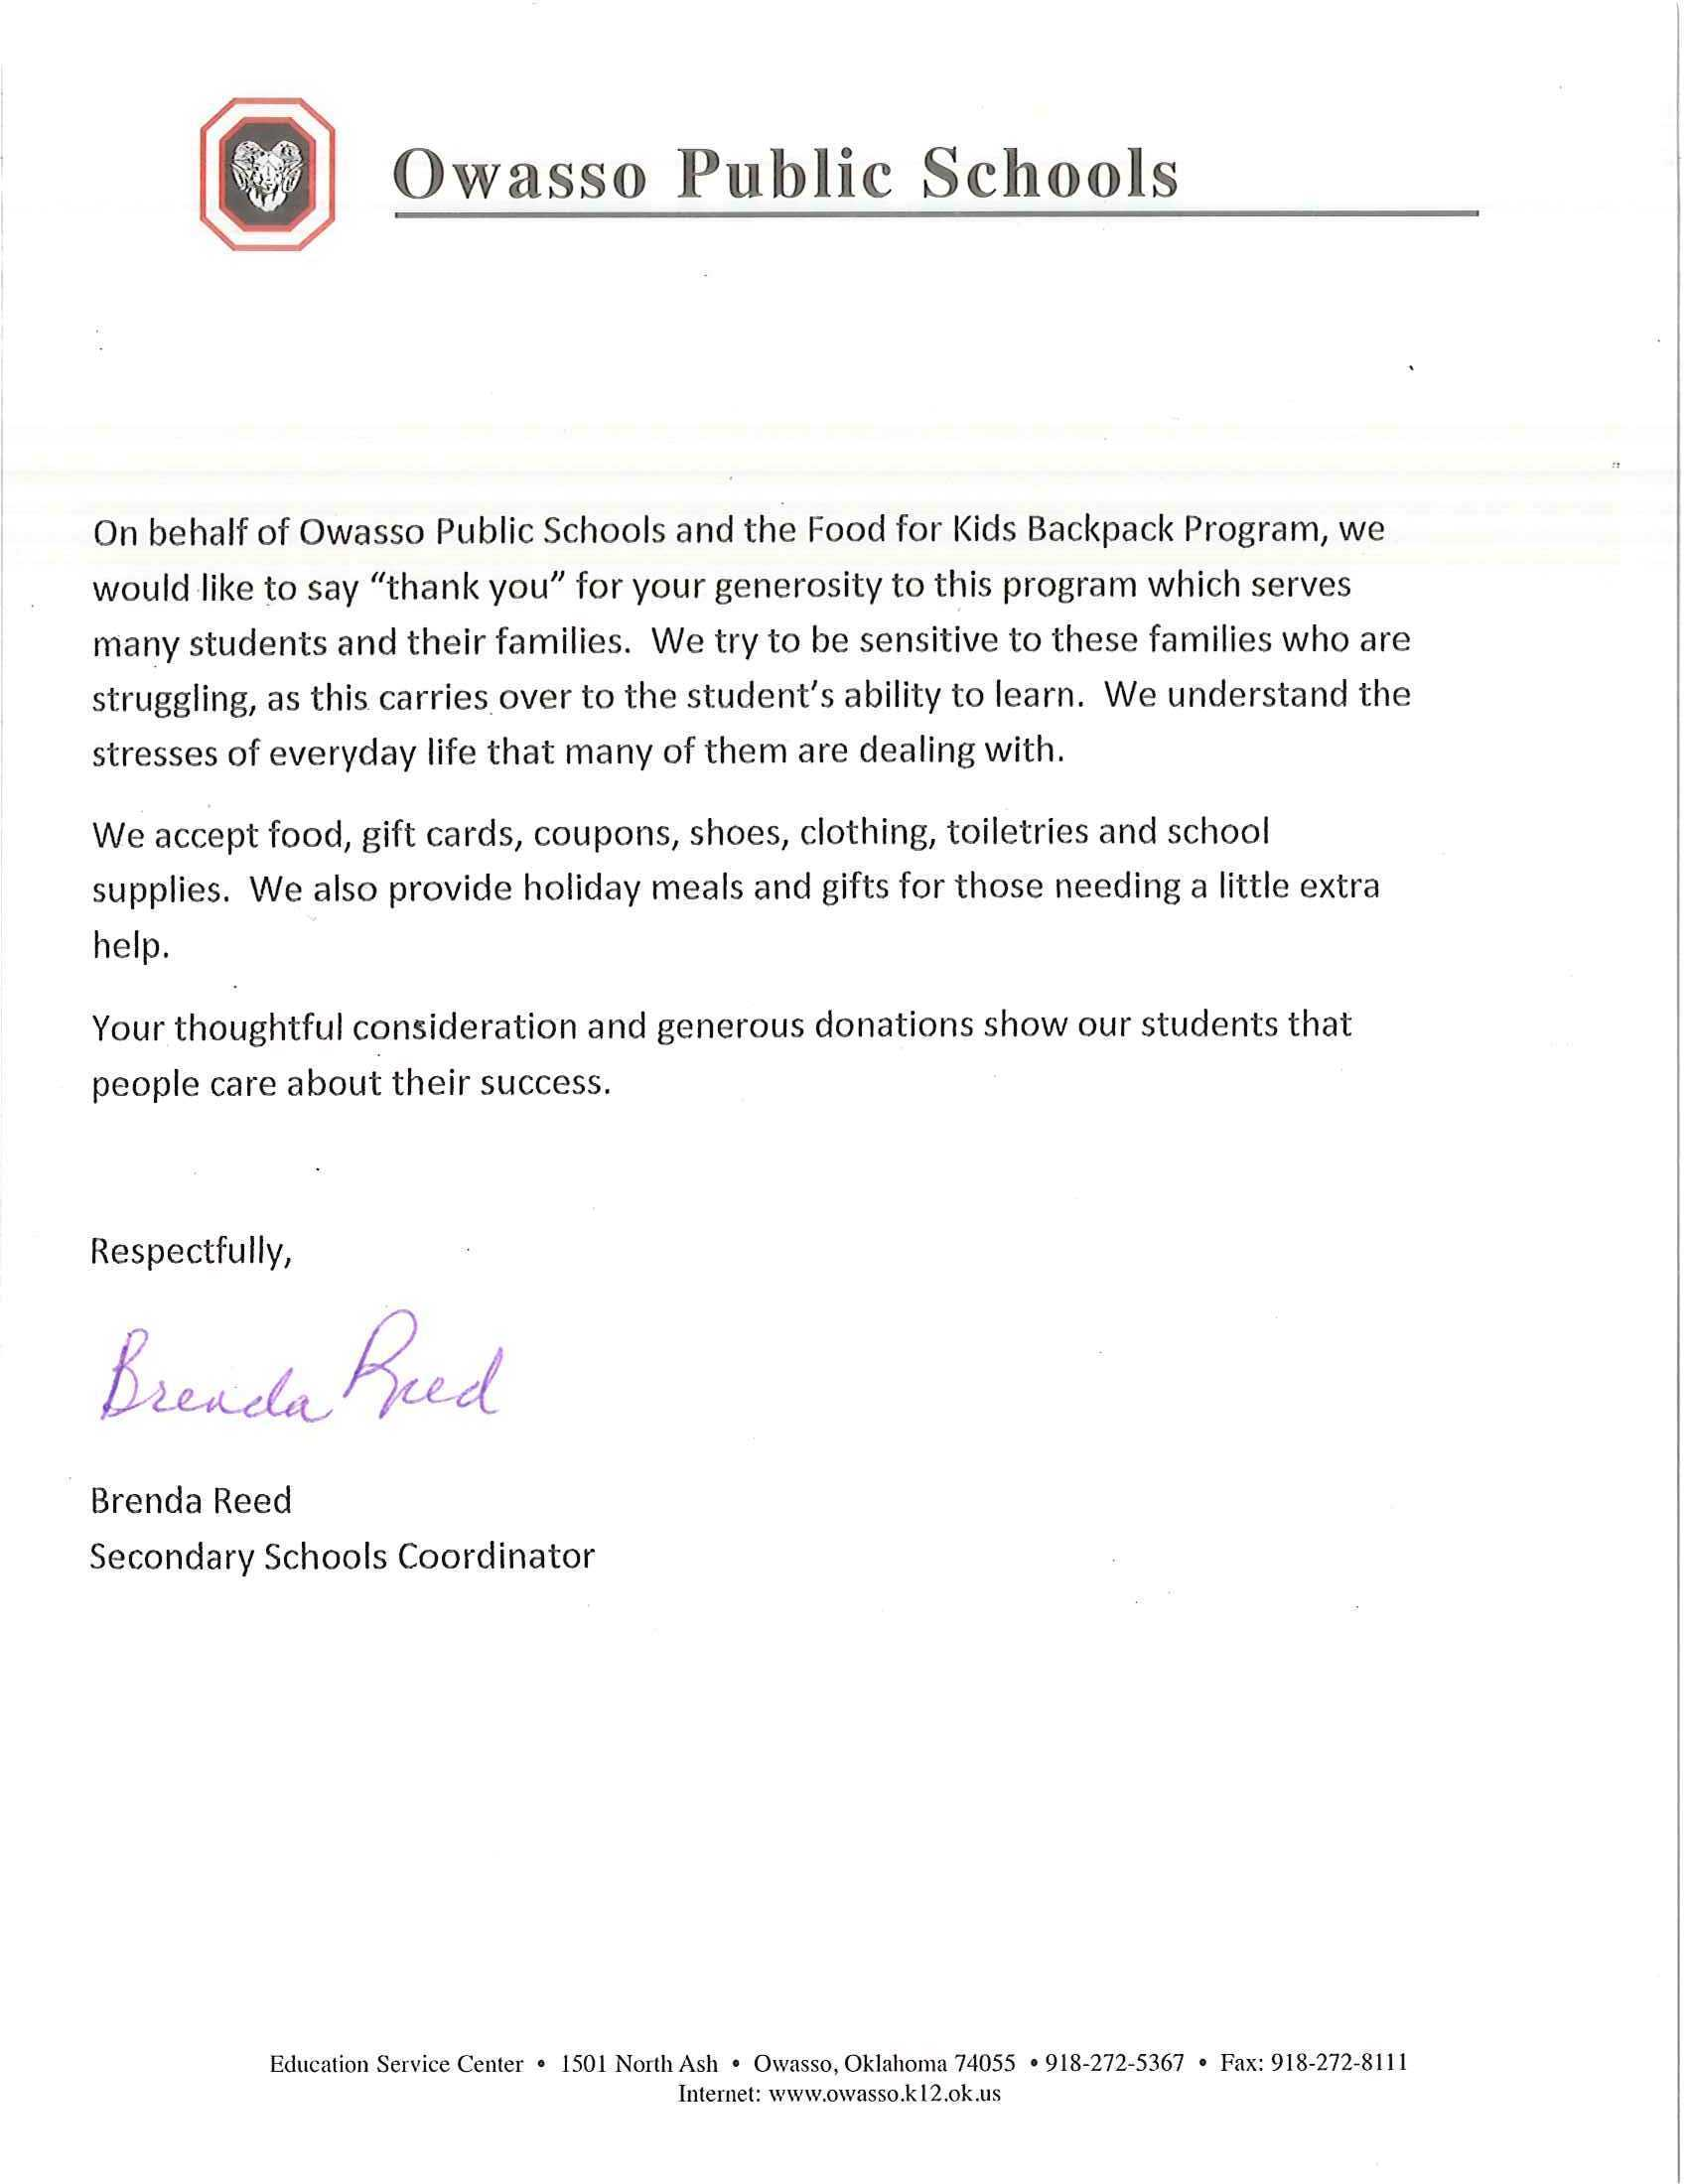 Classic Chevrolet Supports Our Local Owasso Community